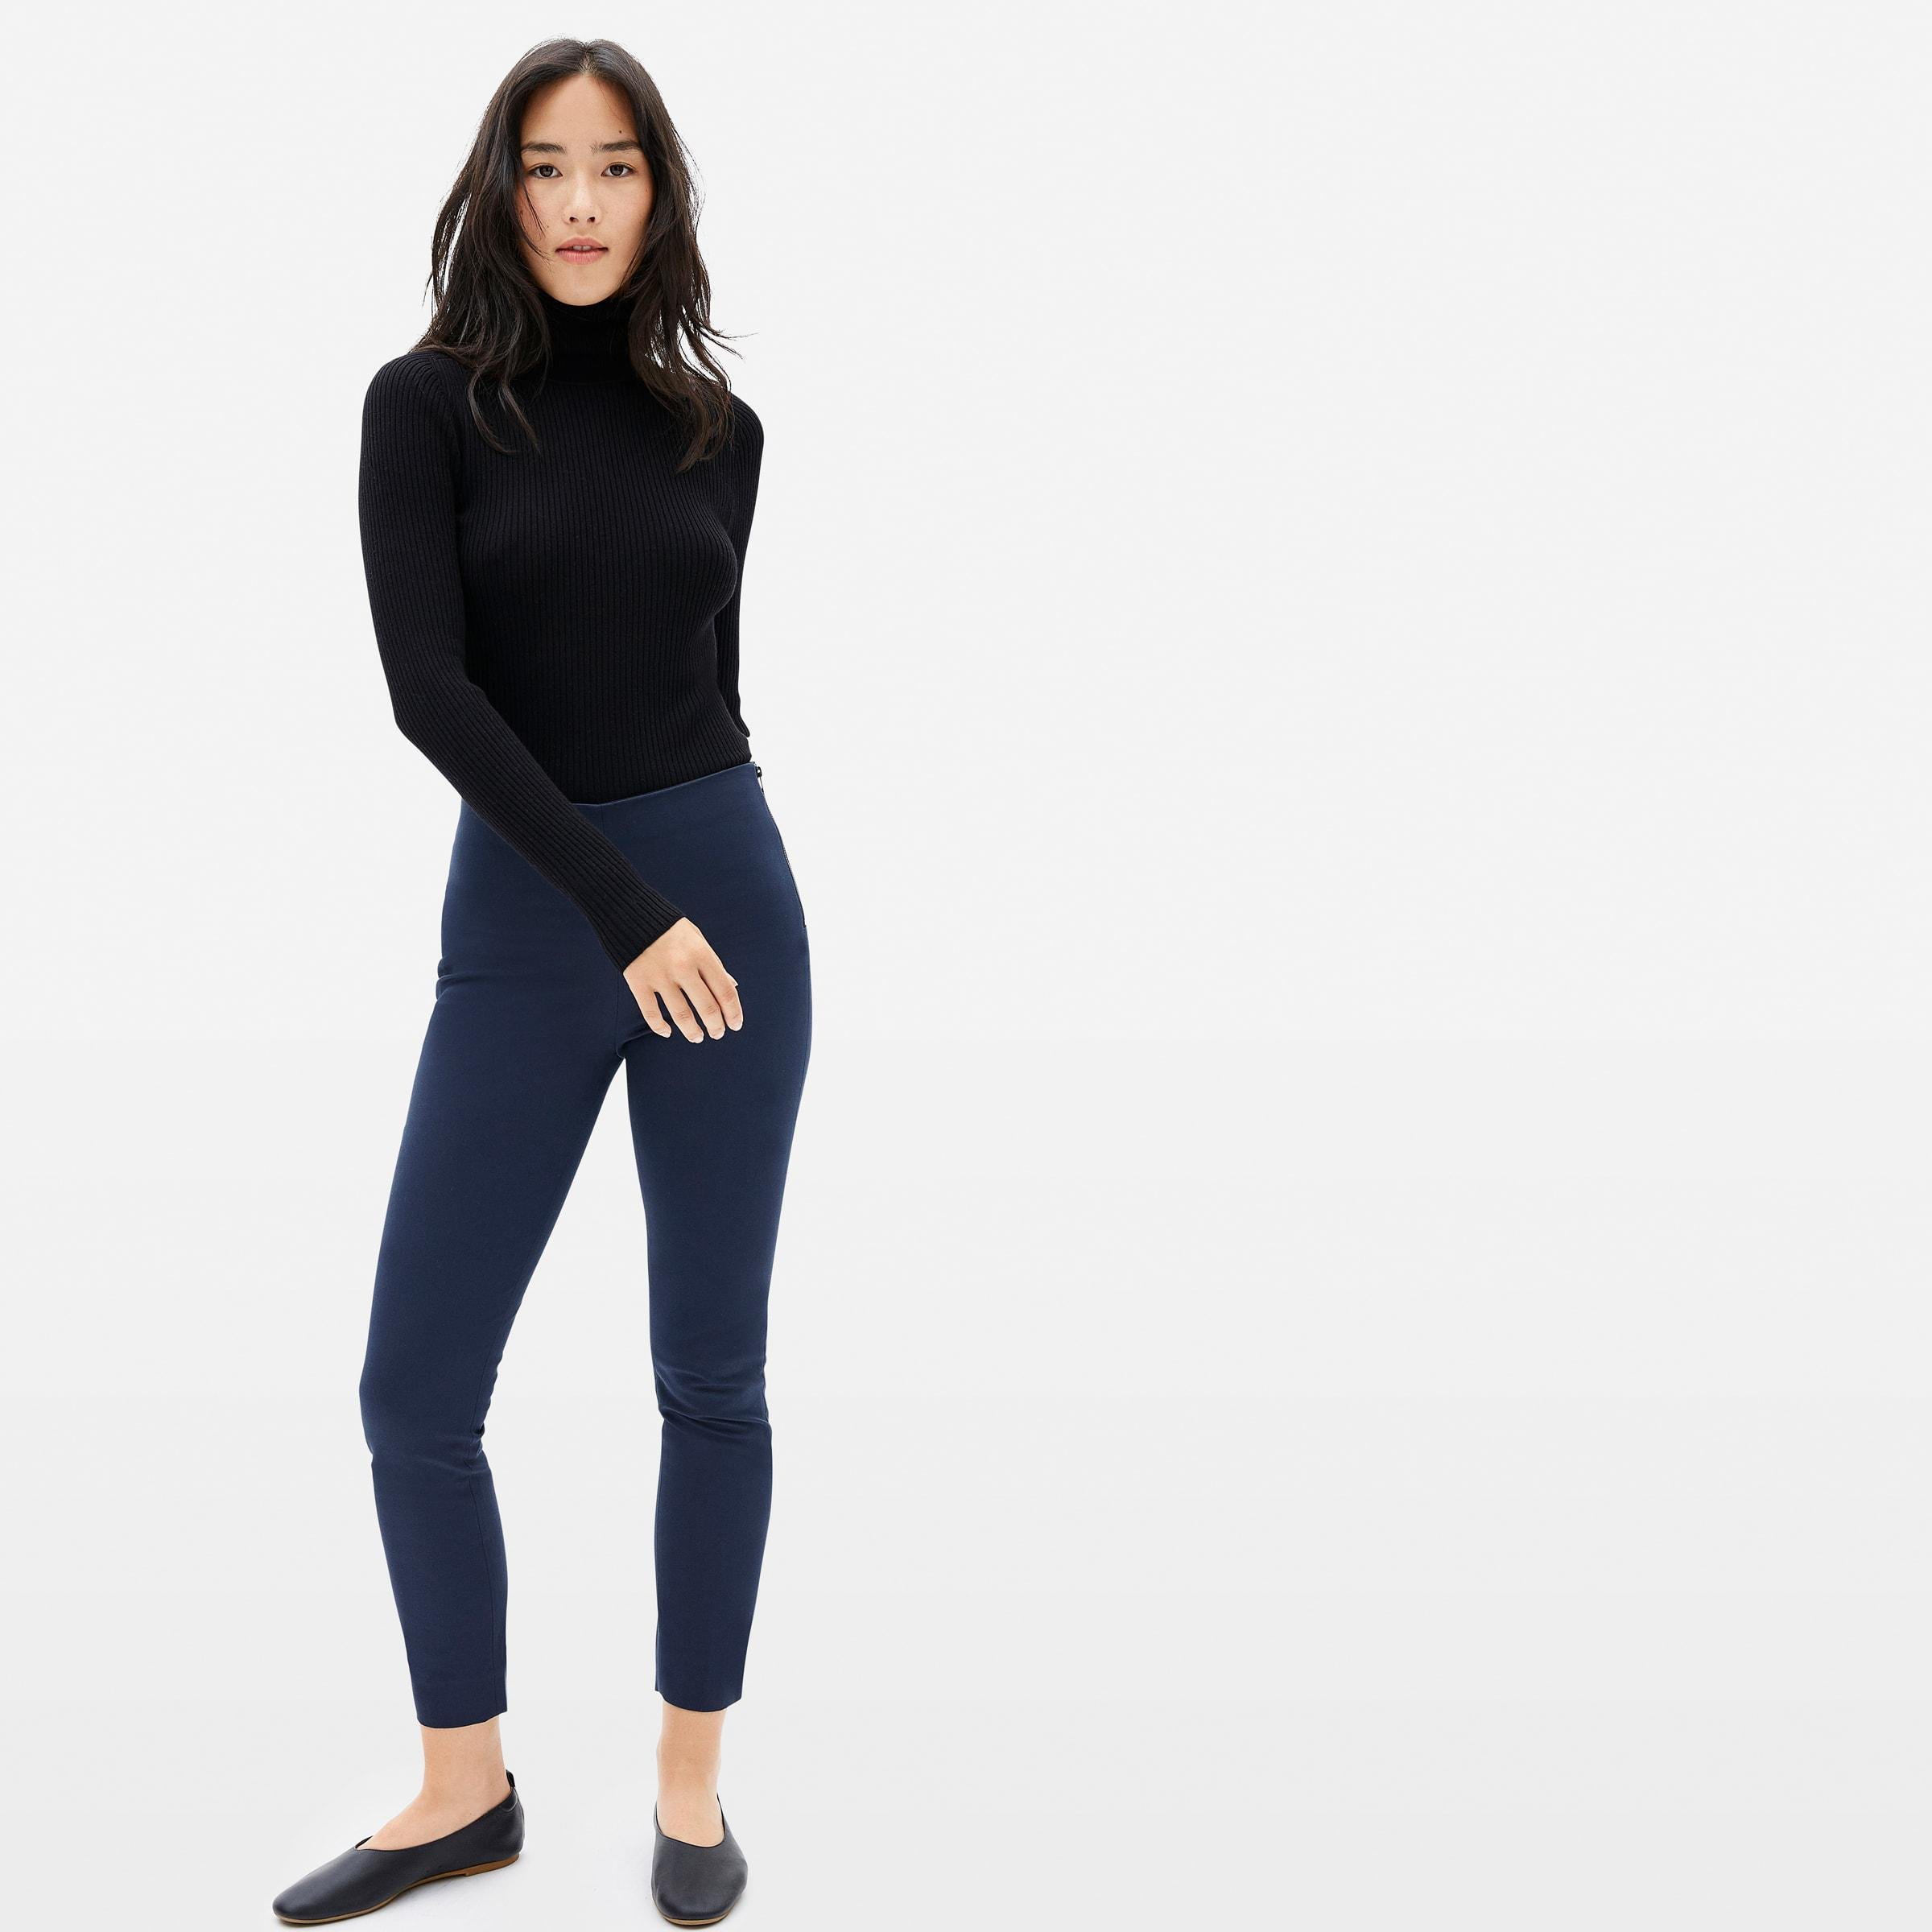 The Side-Zip Stretch Cotton Pant